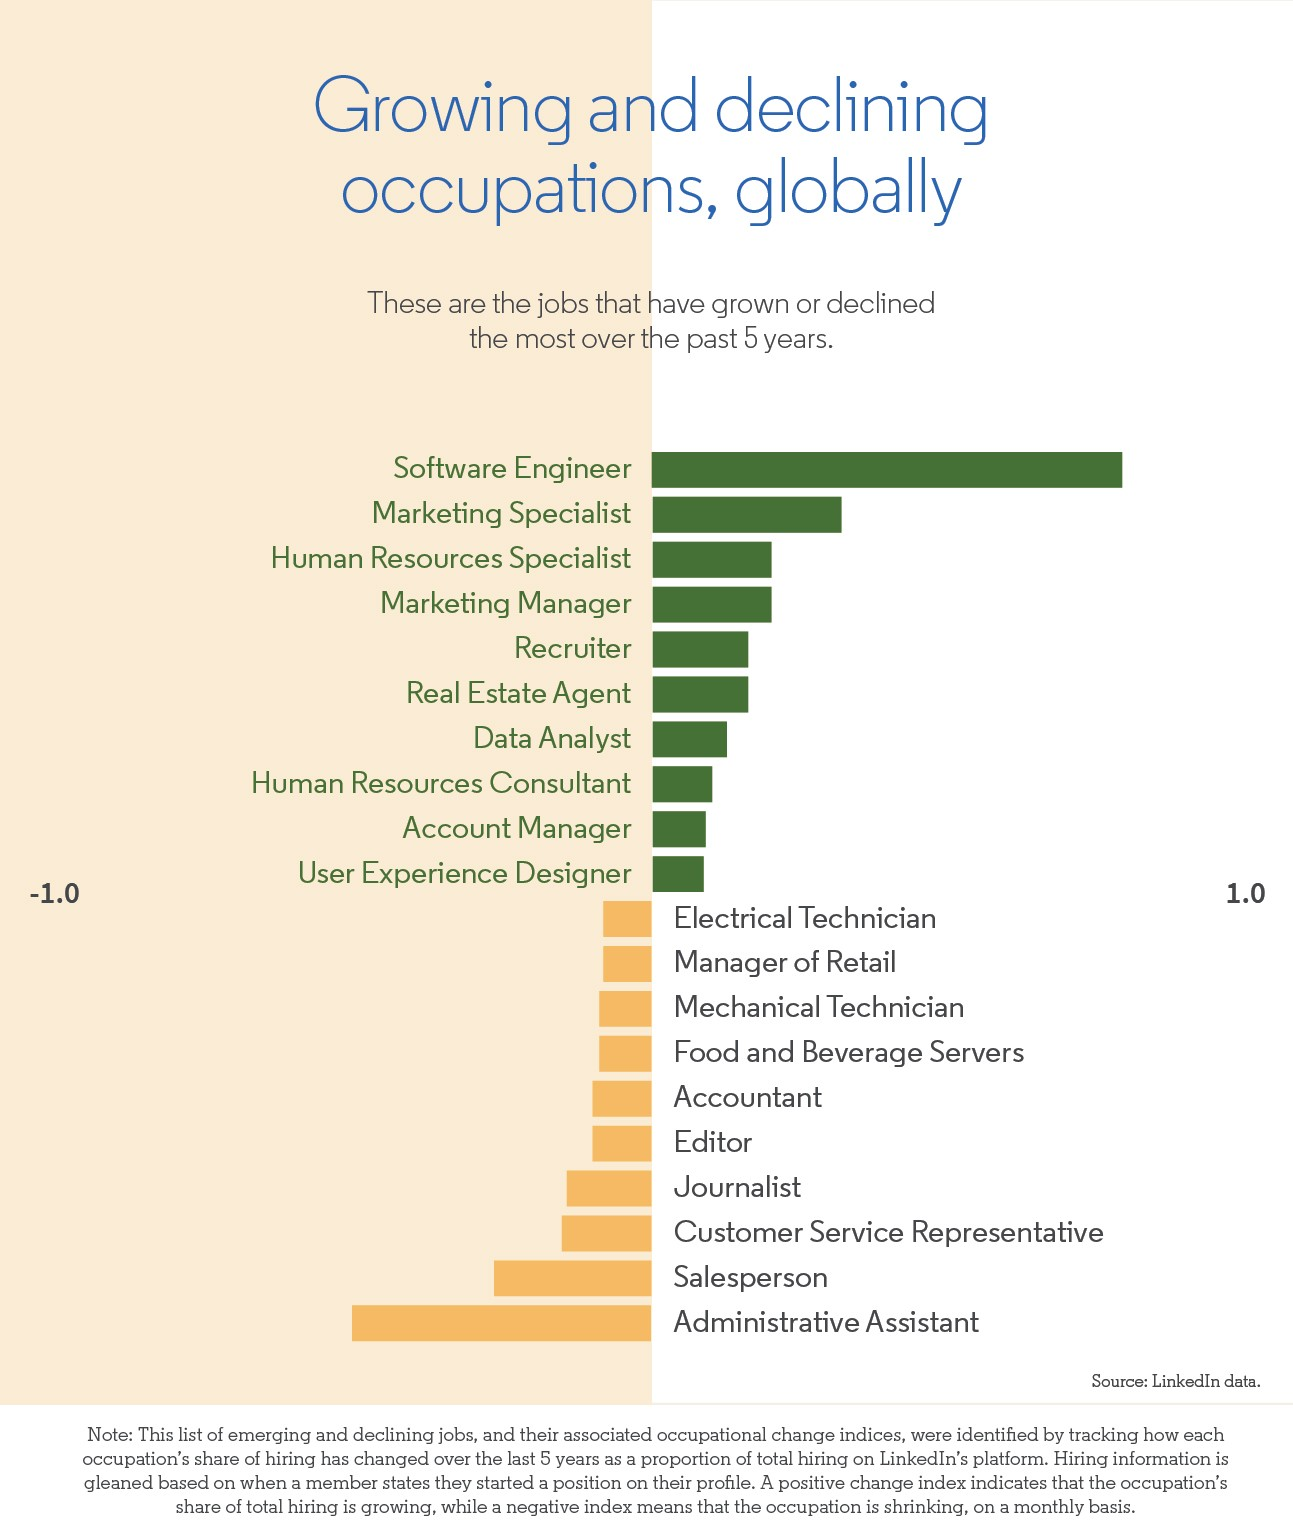 Growing and declining occupations, globally